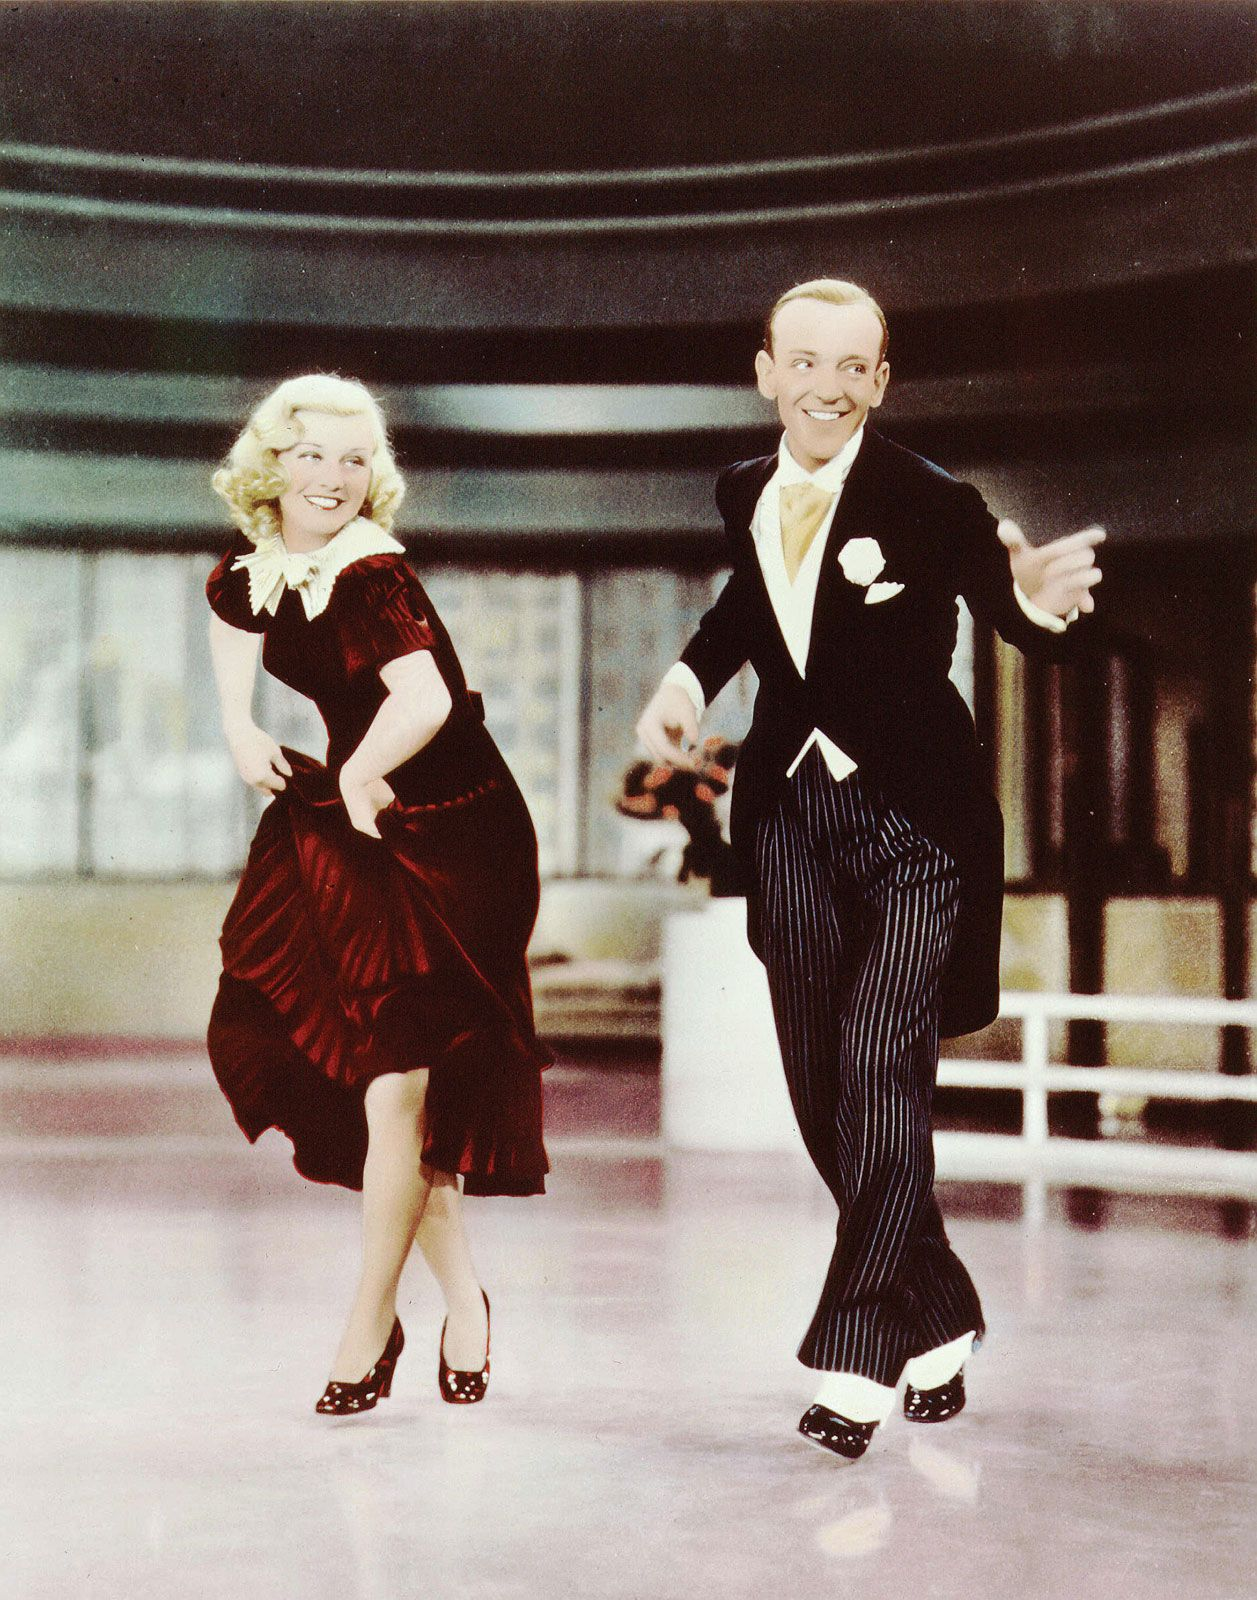 fred and ginger in color Fred Astaire and Ginger Rogers